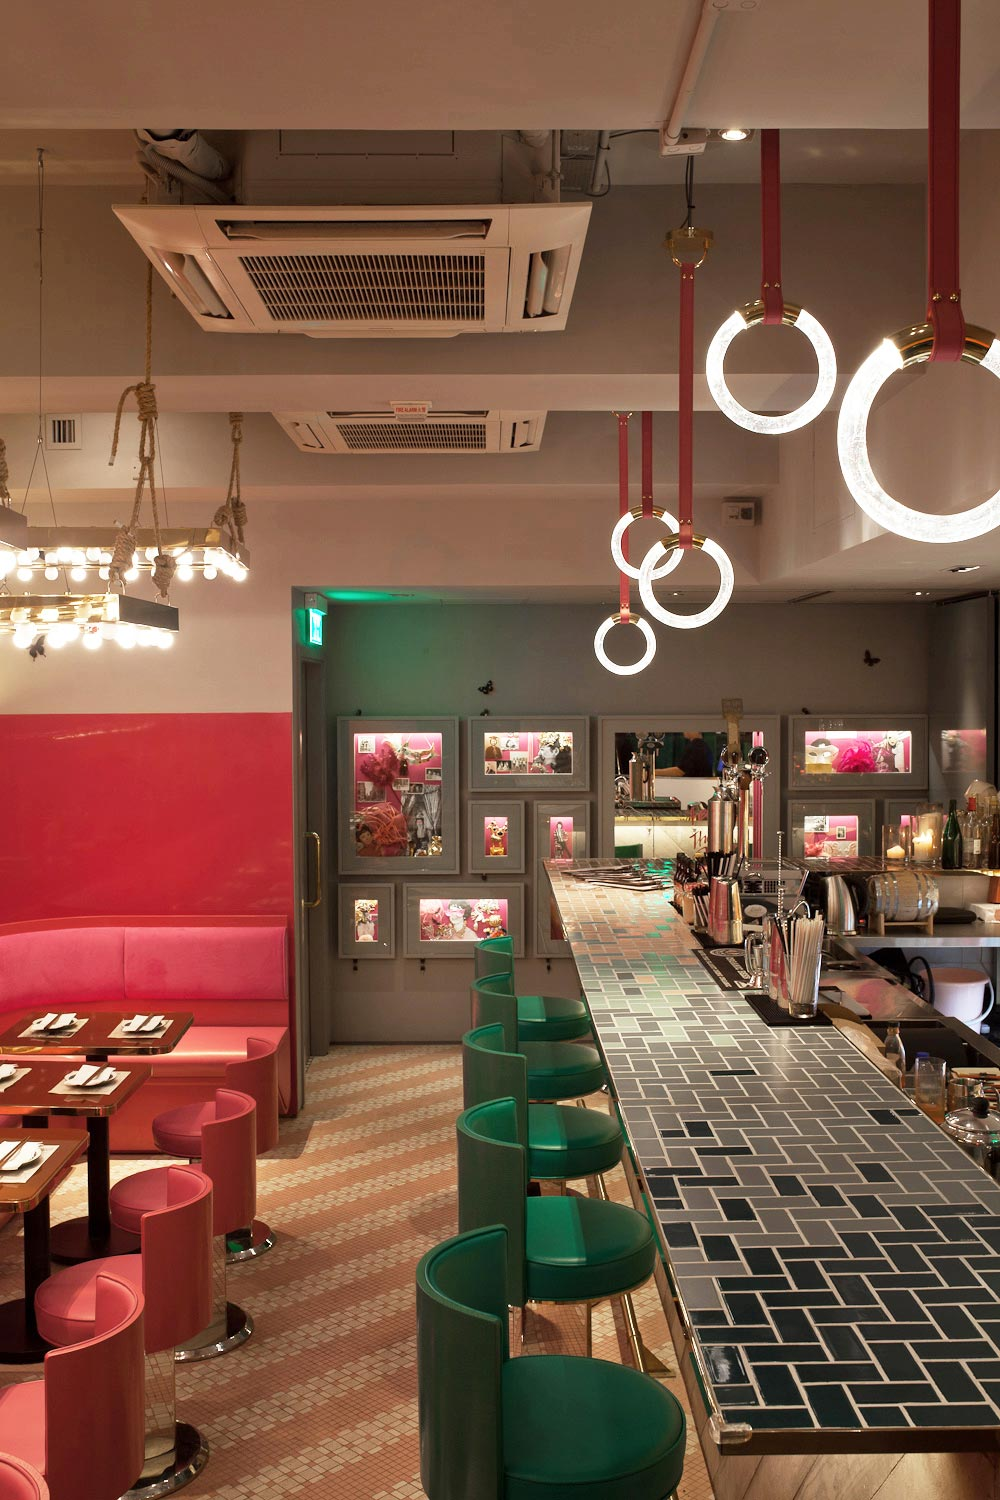 Mrs pound speakeasy bar and restaurant in hong kong by for Interior design hong kong